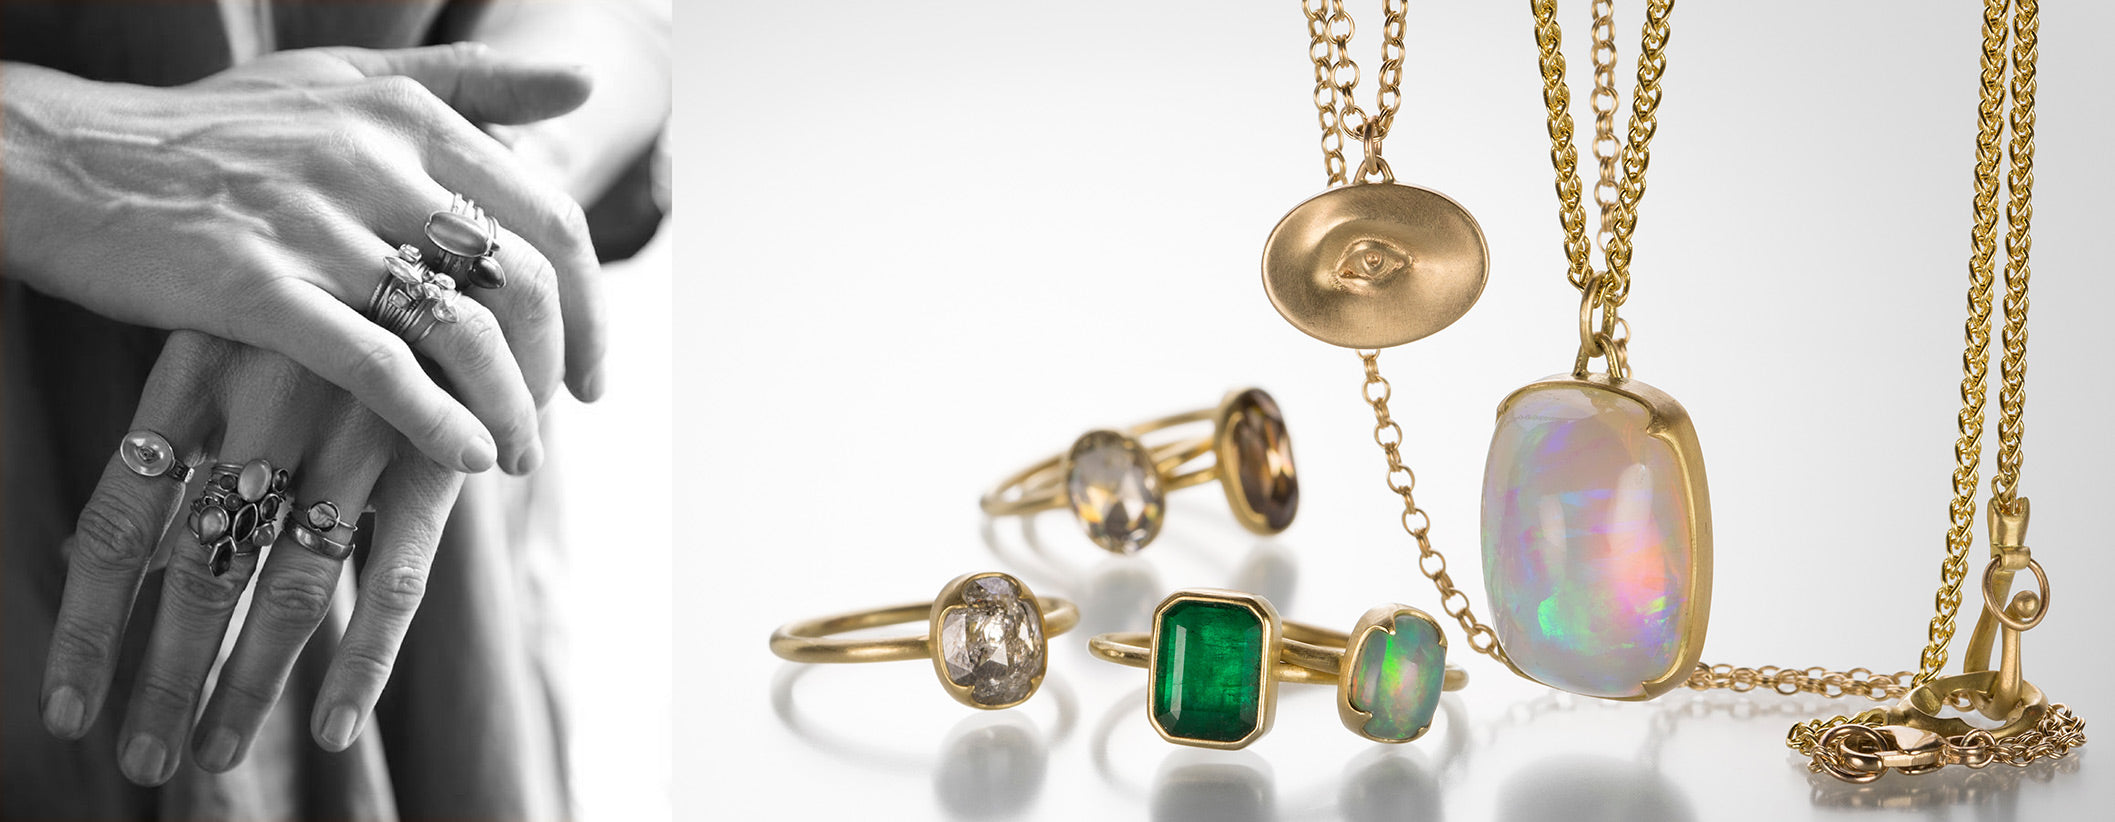 Gabriella Kiss | Designer Jewelry | Shop Gabriella Kiss jewelry at Quadrum, located in the Greater Boston Area, featuring an extensive collection of handcrafted gemstone earrings, snake hoops, love token rings, gemstone rings, snake rings and necklaces.